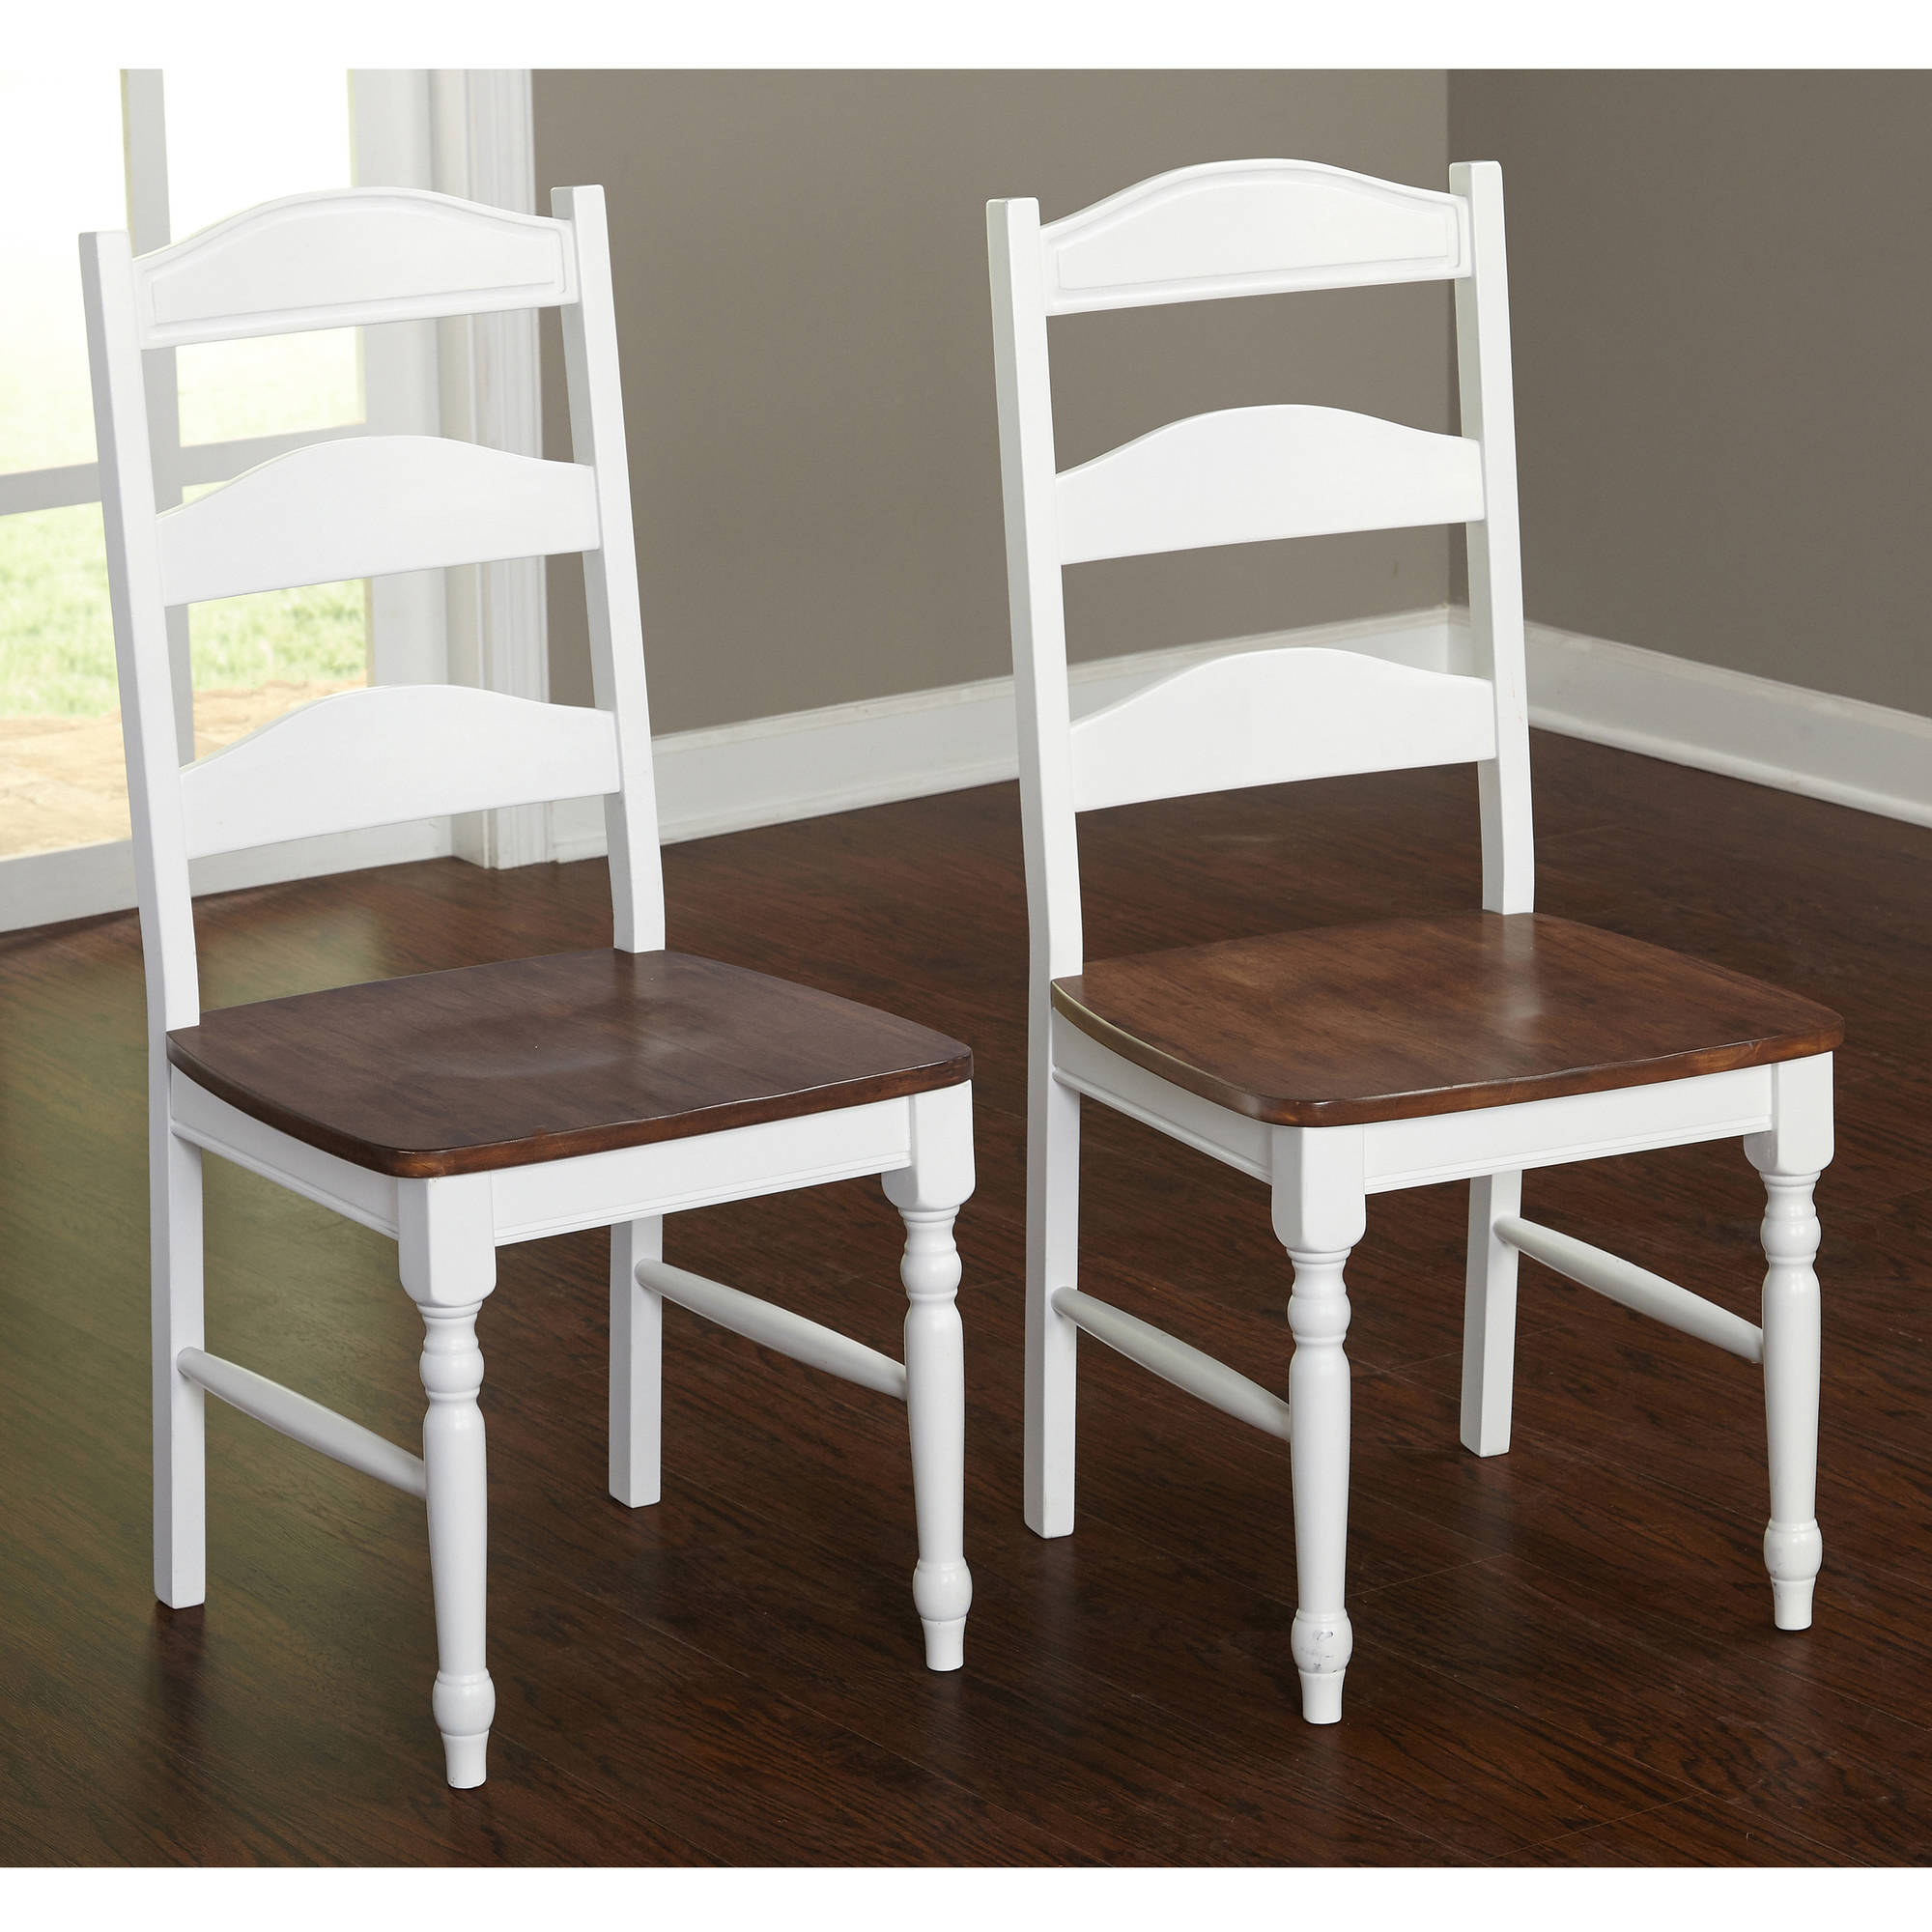 Skipton Dining Chair, Set of 2, White/Walnut